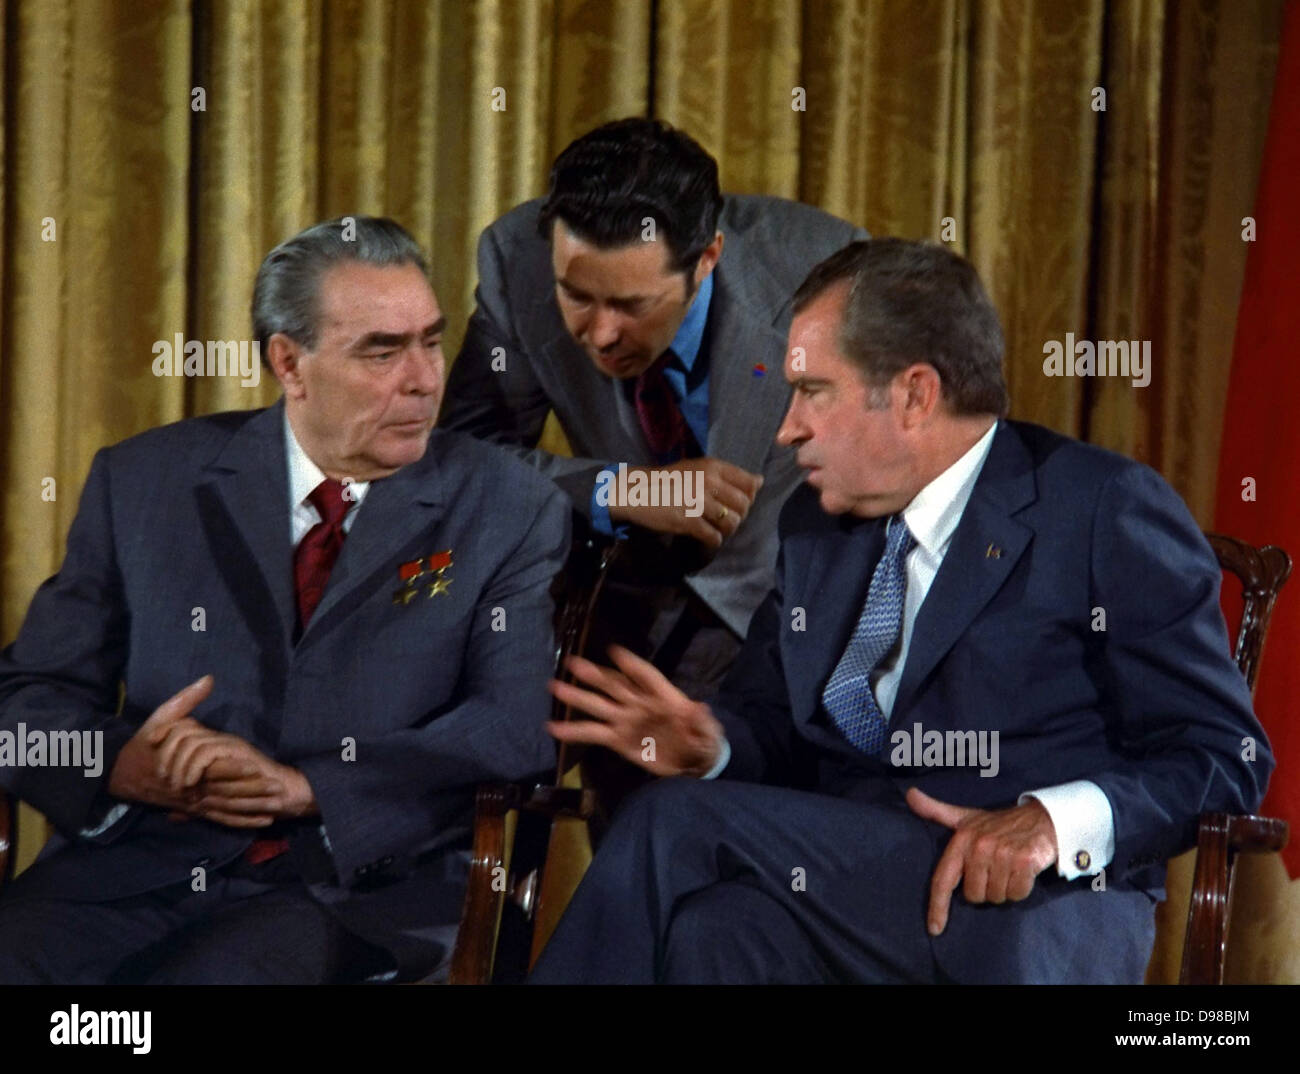 Brezhnev and Nixon talk during Brezhnev's June 1973 visit to Washington during the beginning of détente - Stock Image